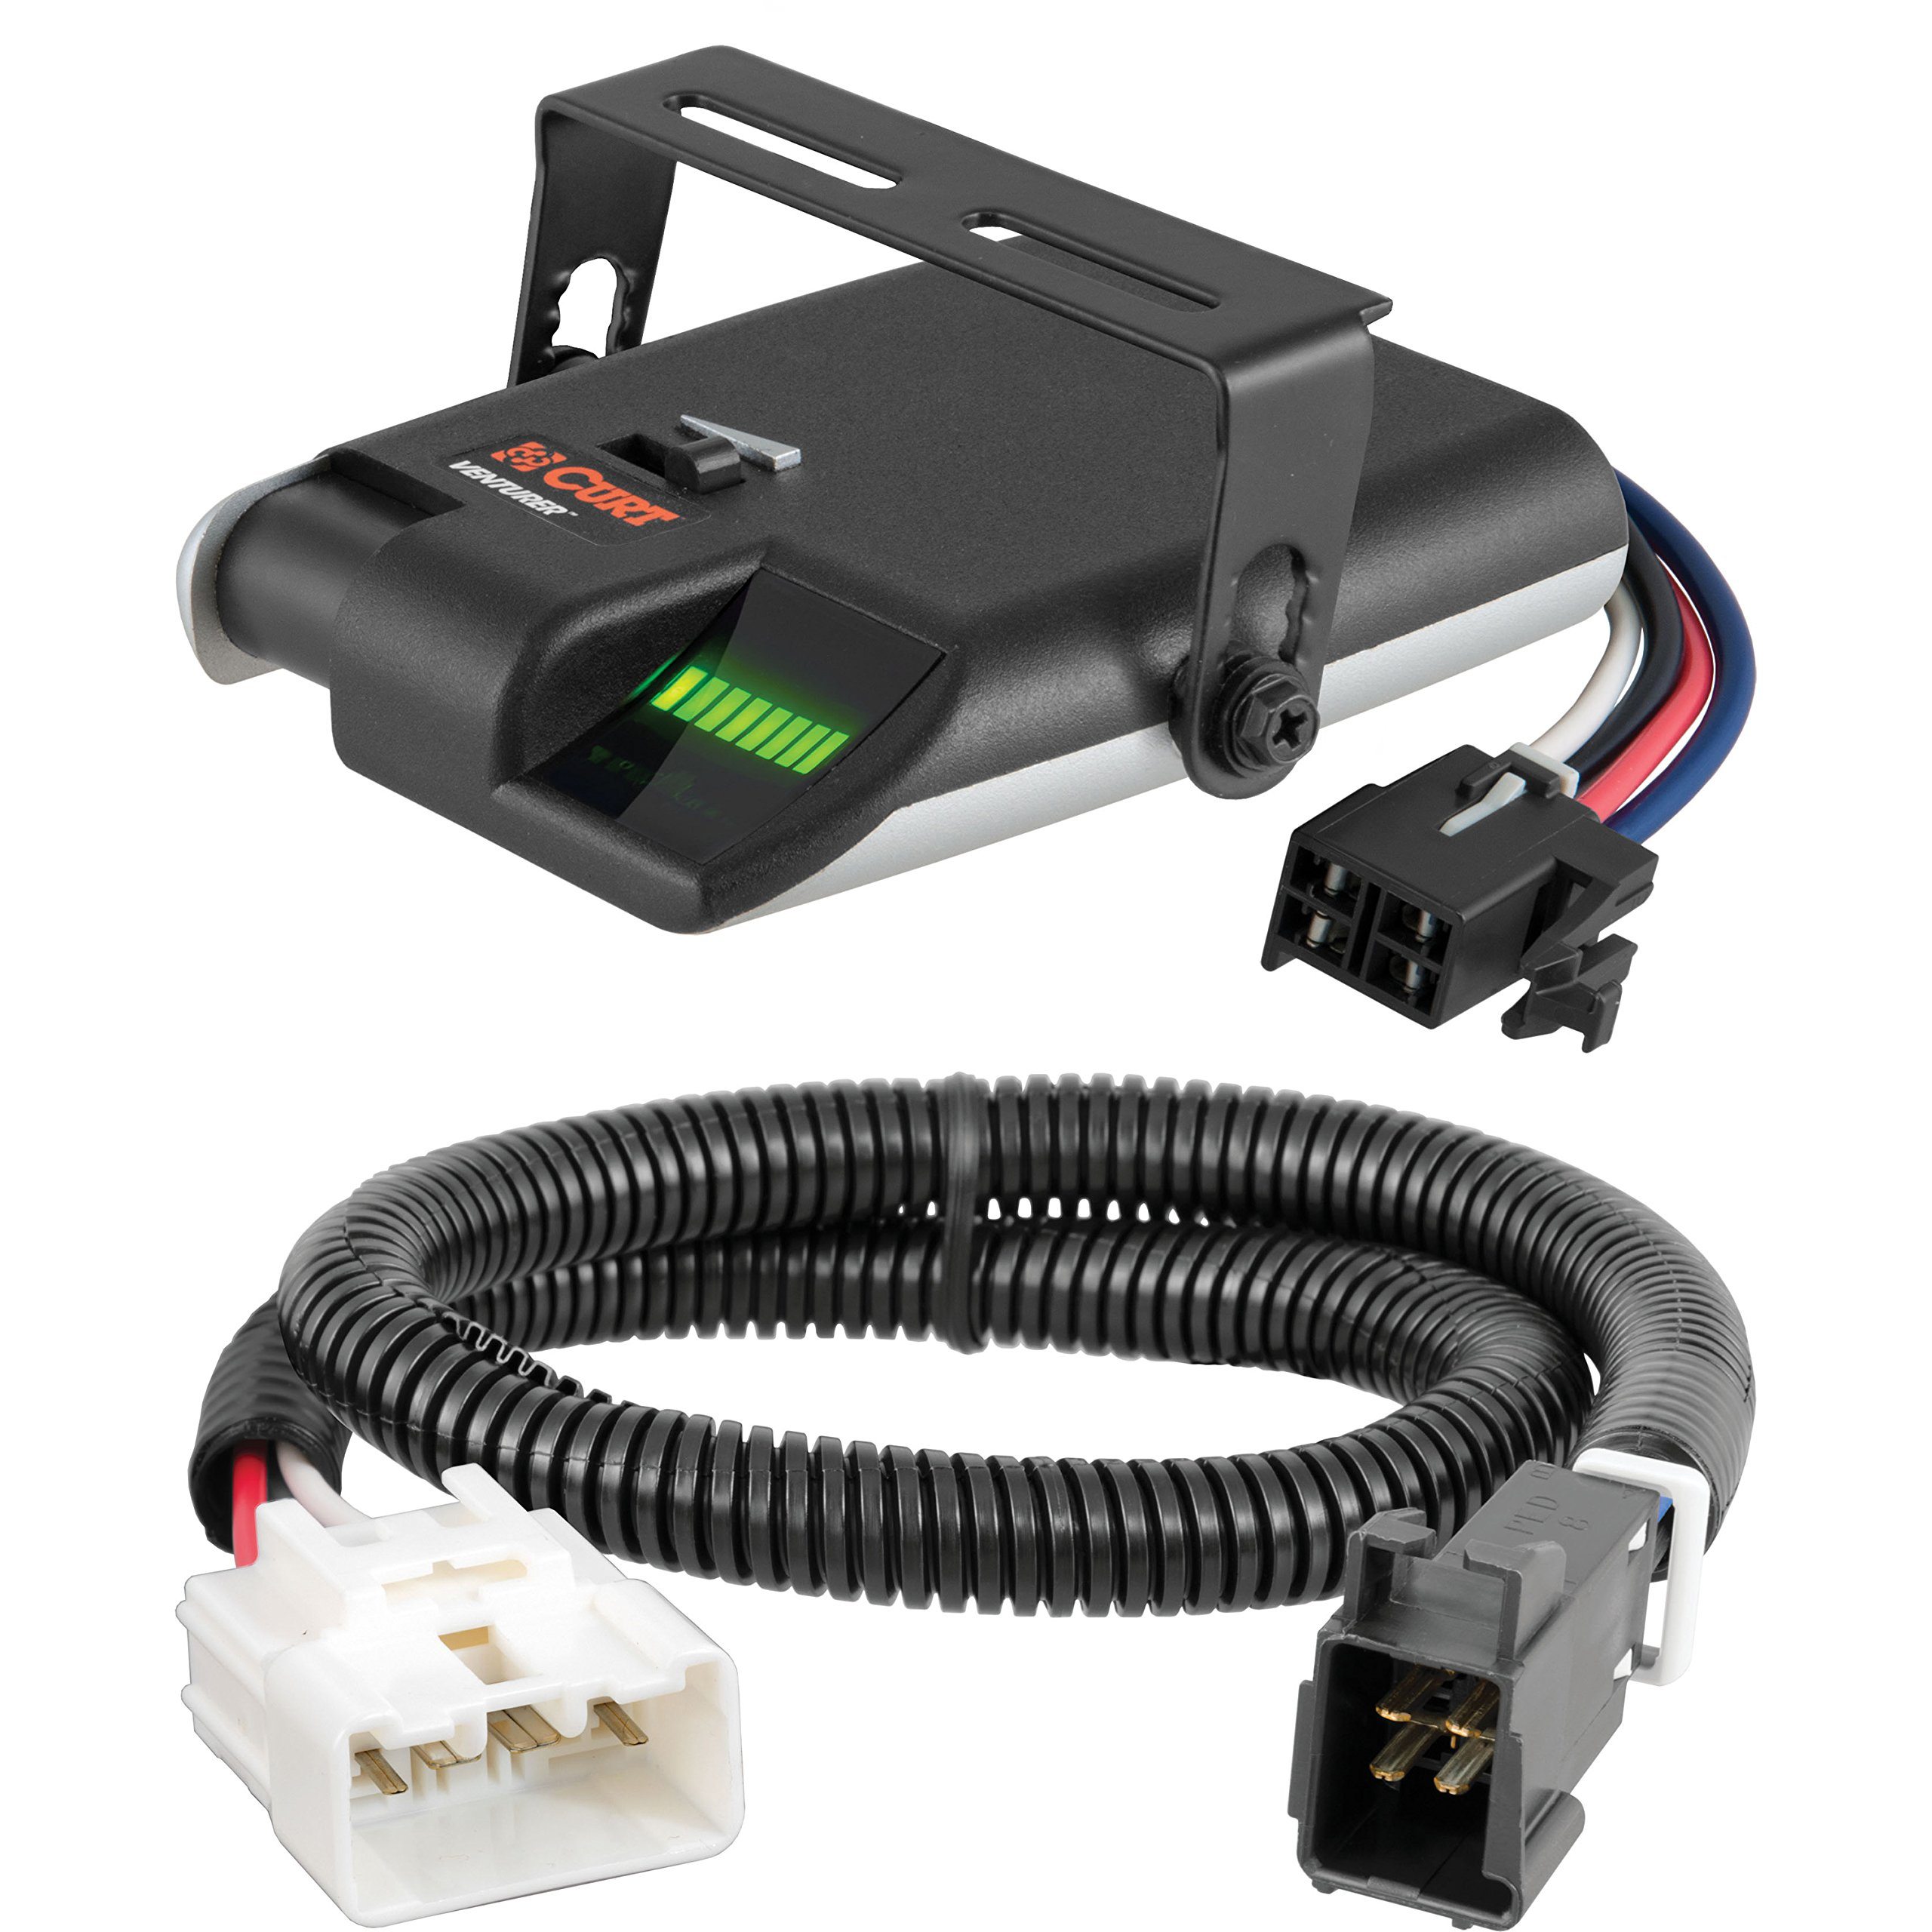 CURT Venturer Electric Brake Controller & Wiring Kit for Toyota Tacoma, Tundra - 51455 & 51110